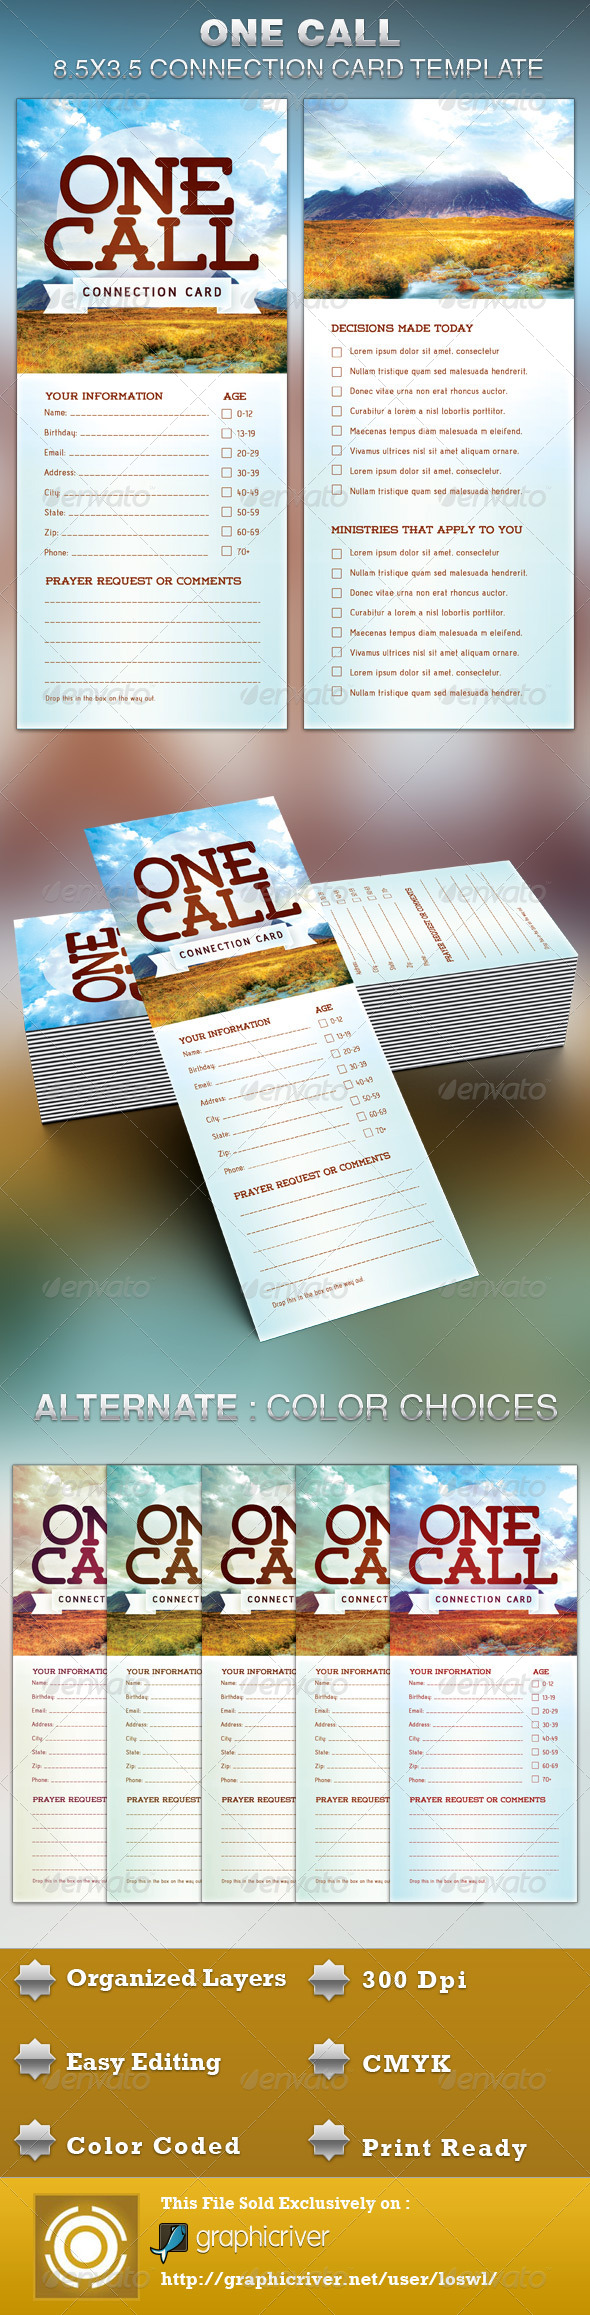 One Call Church Connection Card Template - Cards & Invites Print Templates